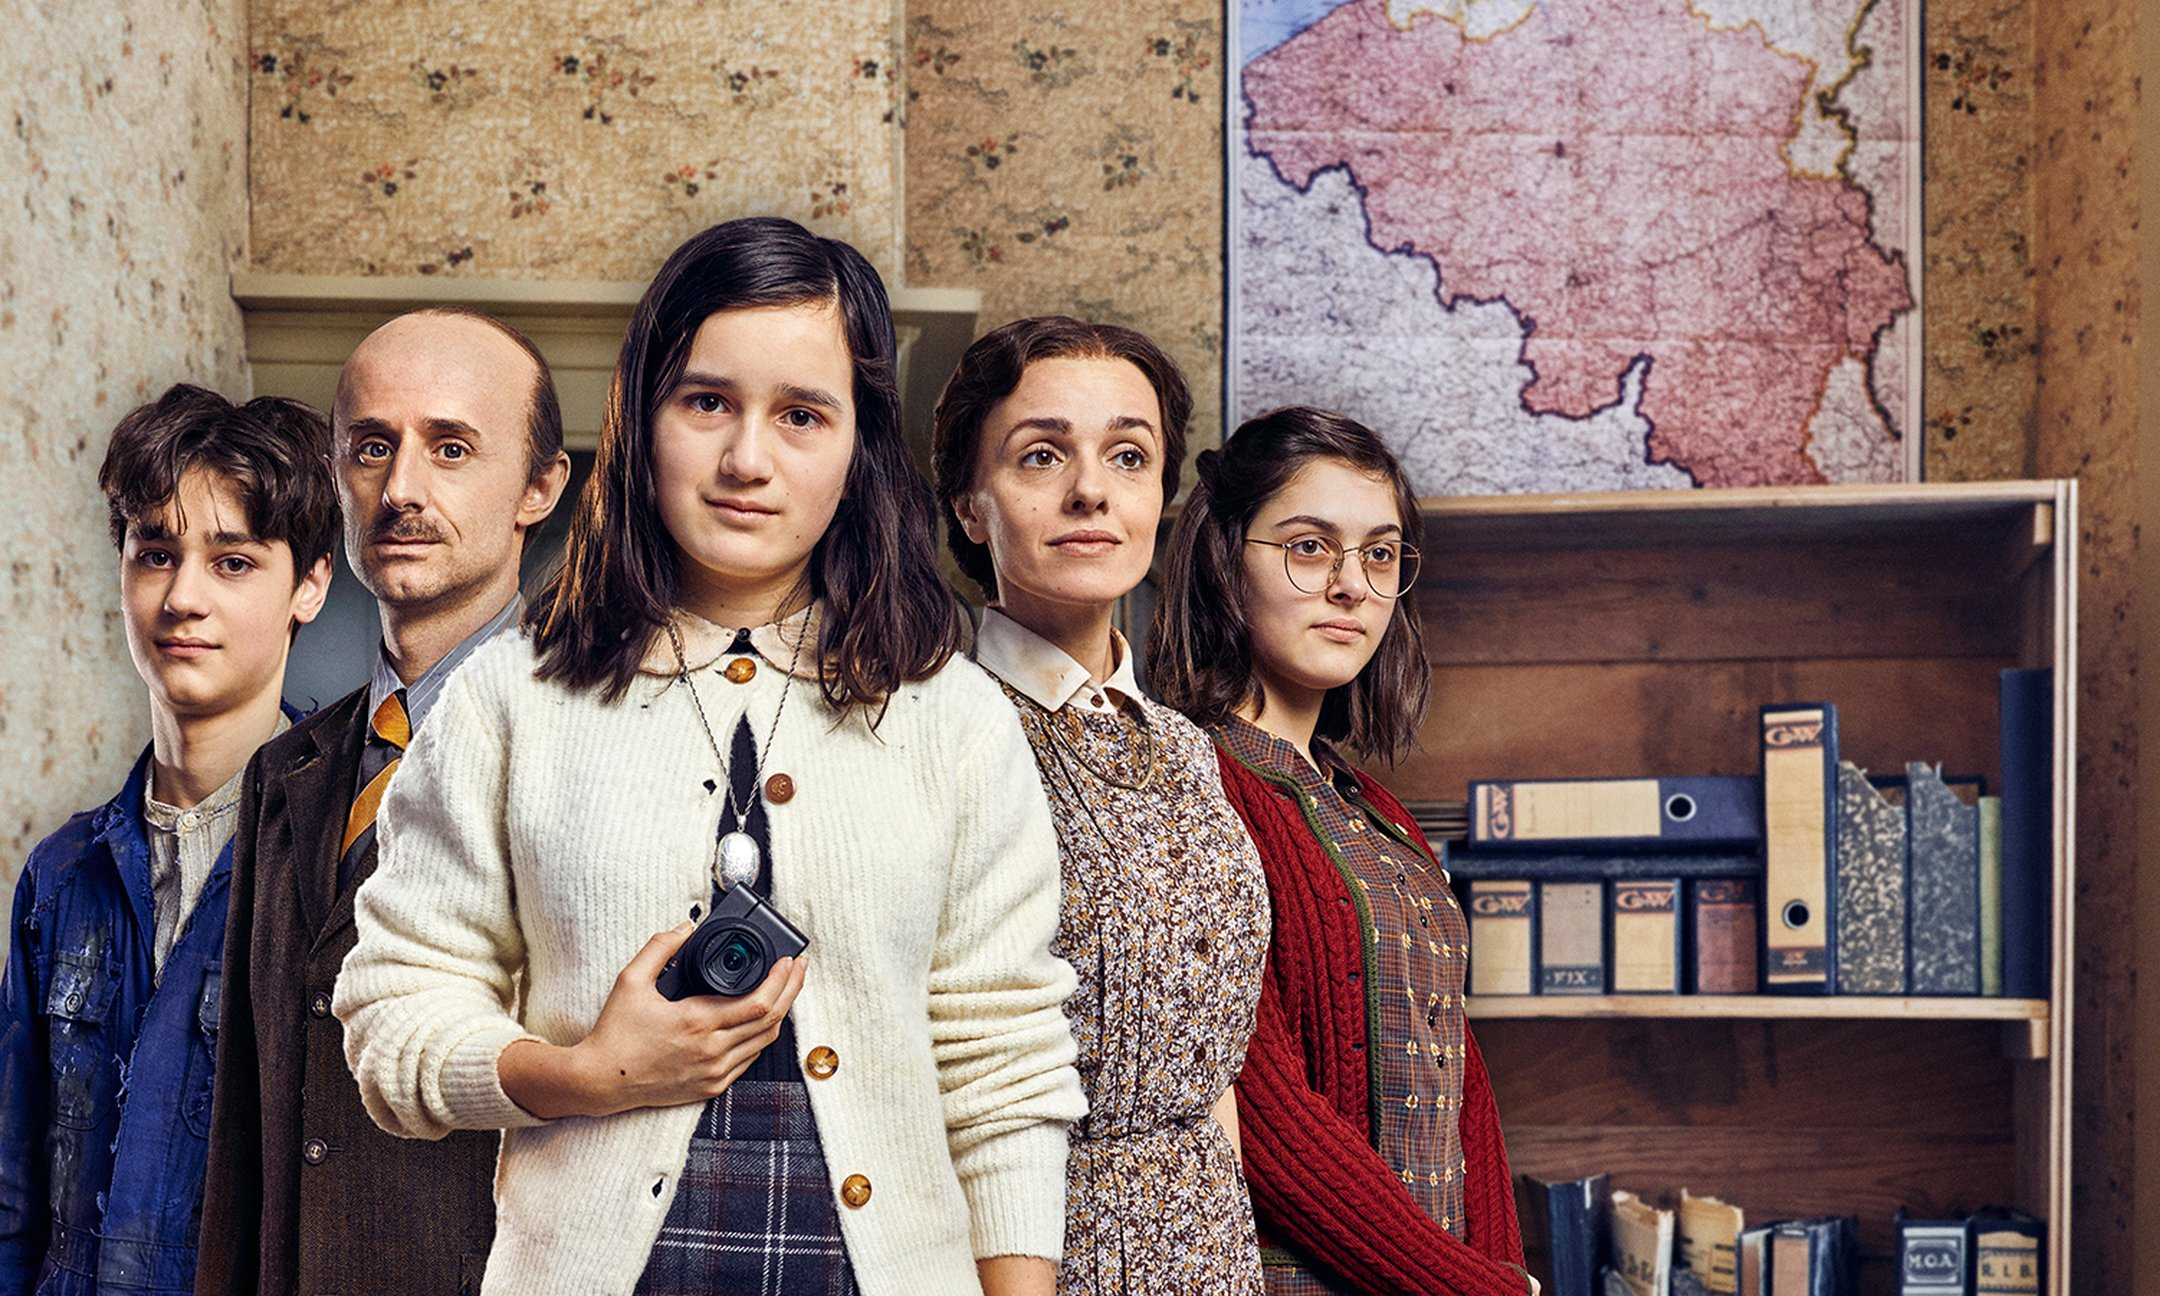 Part of the cast of the Anne Frank video diary, with Luna Cruz Perez in the middle.